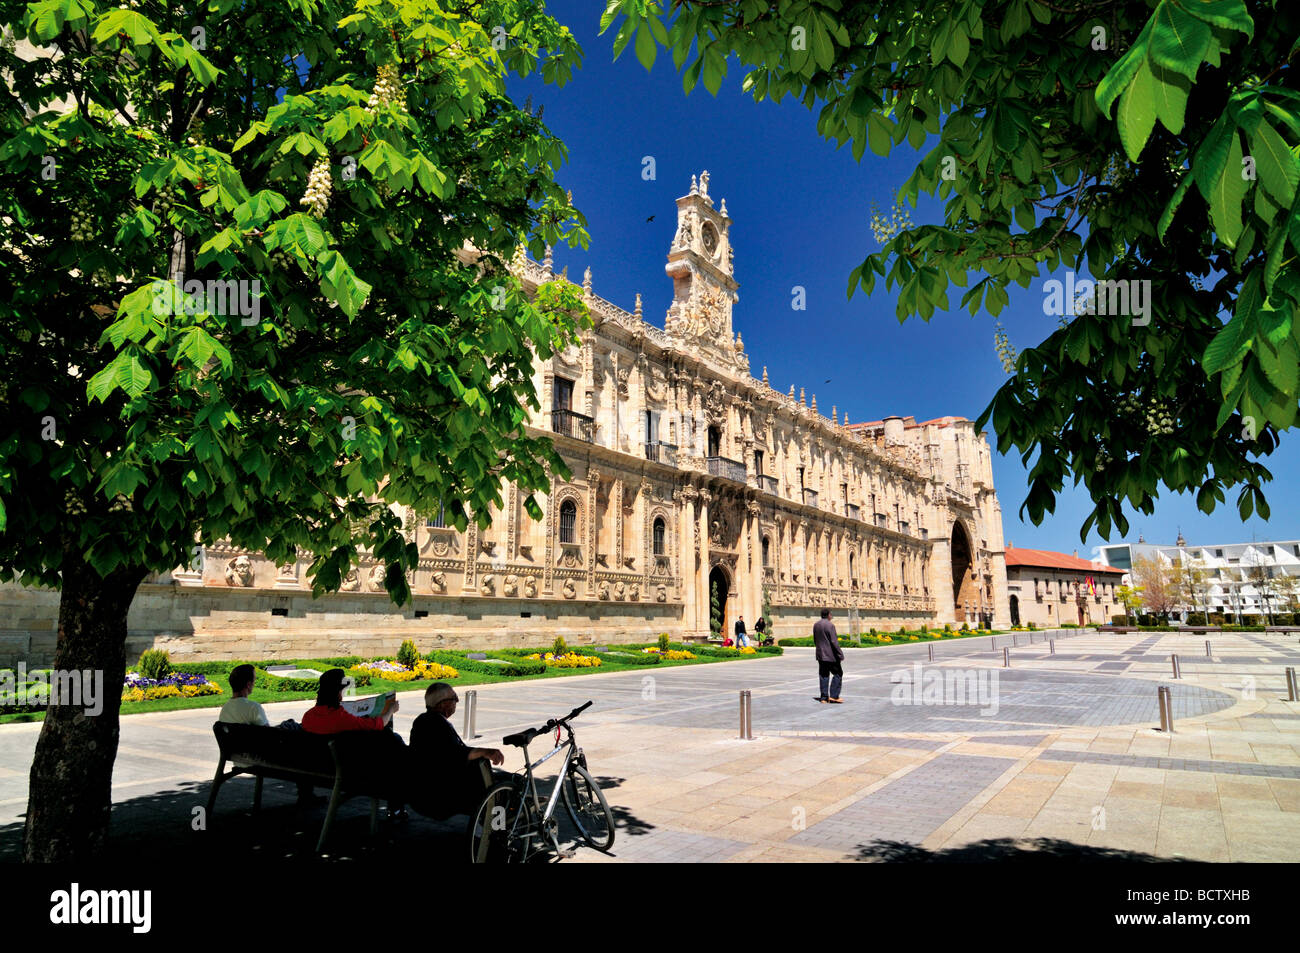 Spain, St. James Way: Square San Marcos with the luxuary Hotel Parador de San Marcos in Leon - Stock Image